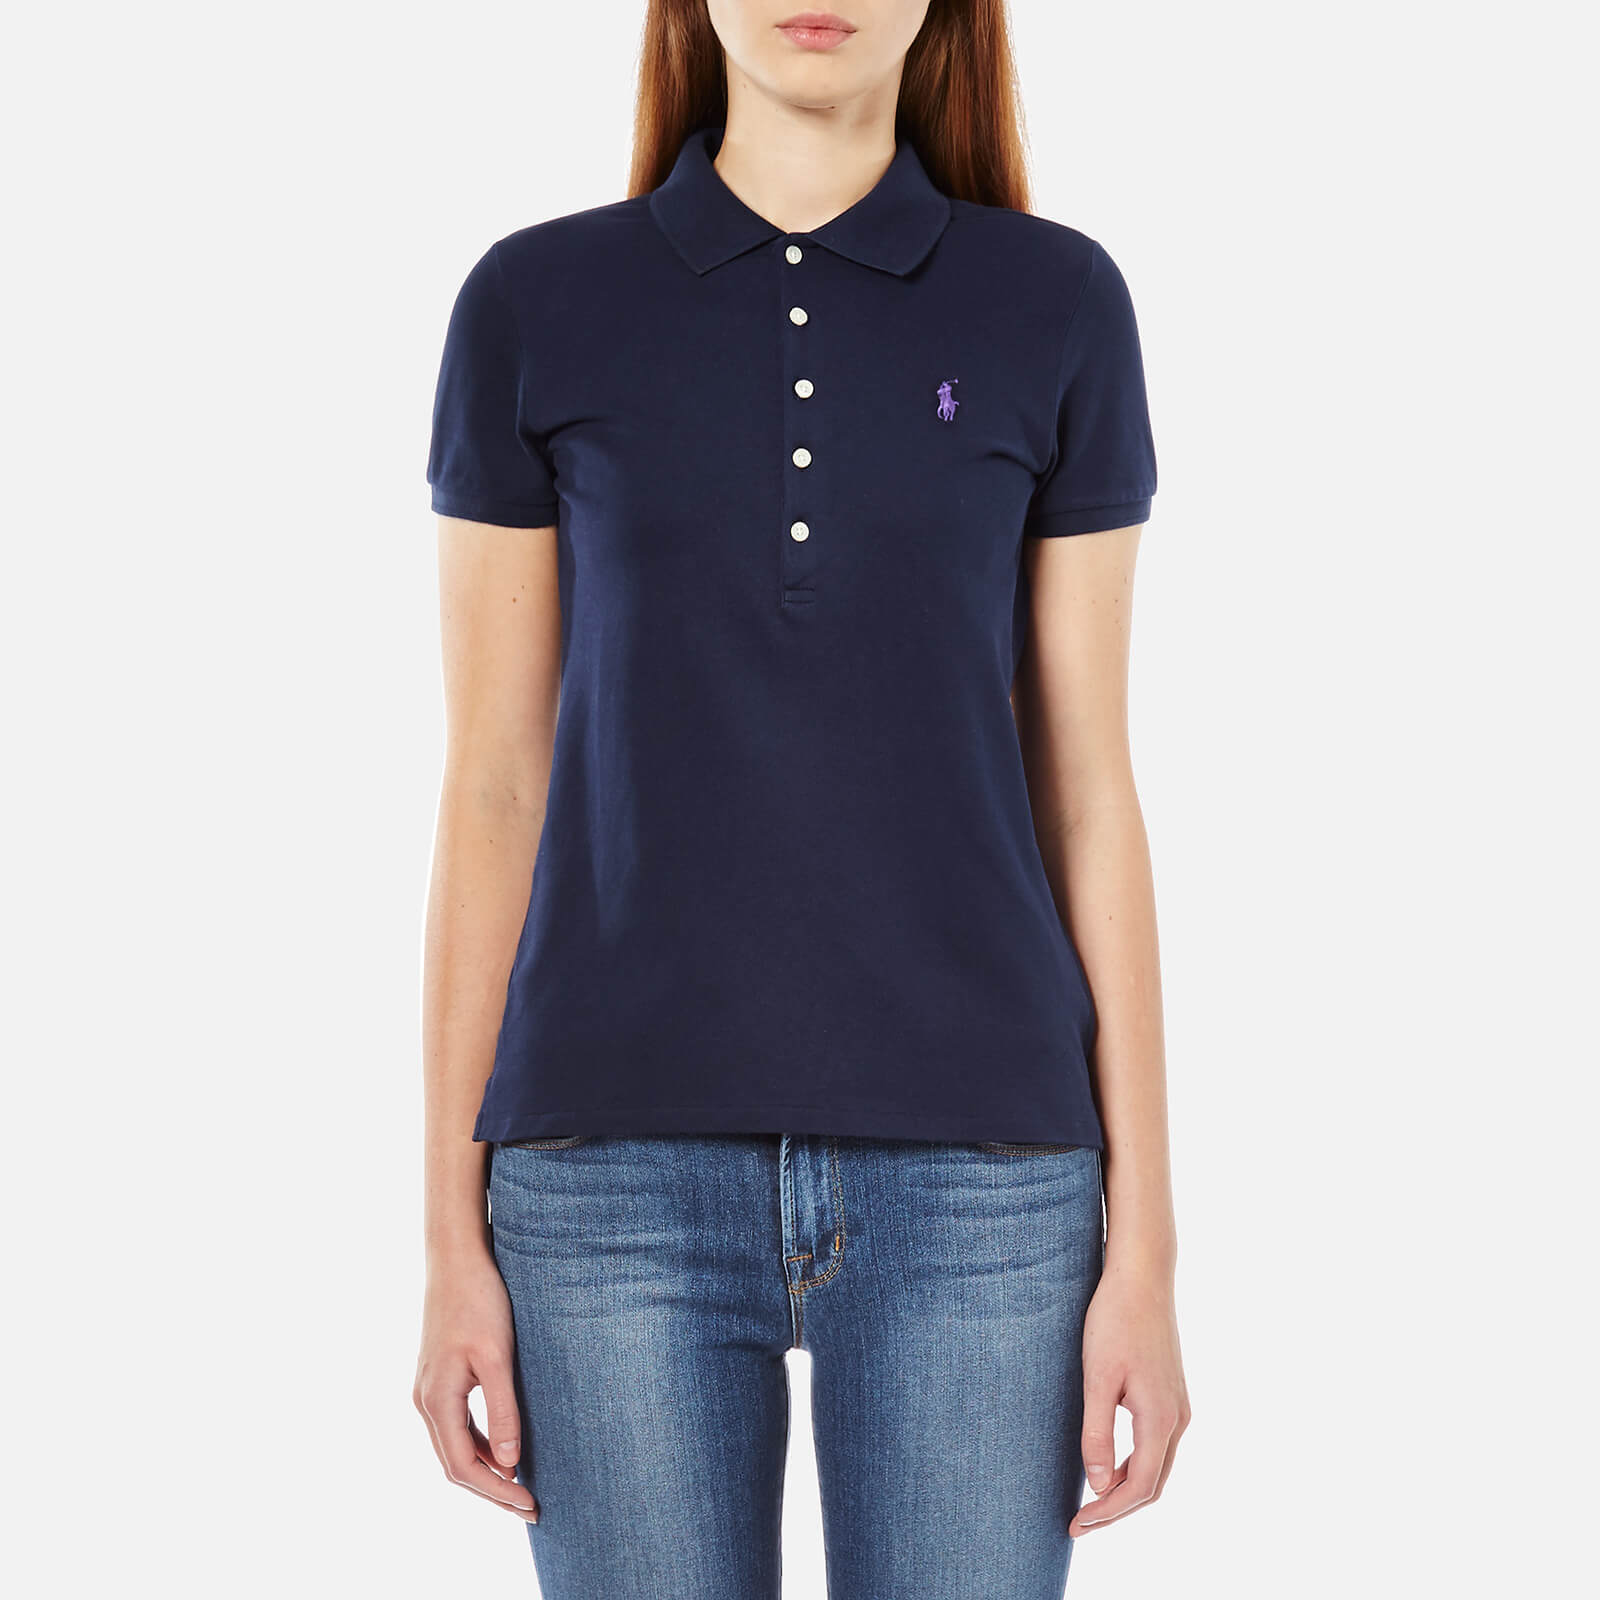 1517d593a Polo Ralph Lauren Women s Julie Polo Shirt - Cruise Navy - Free UK Delivery  over £50